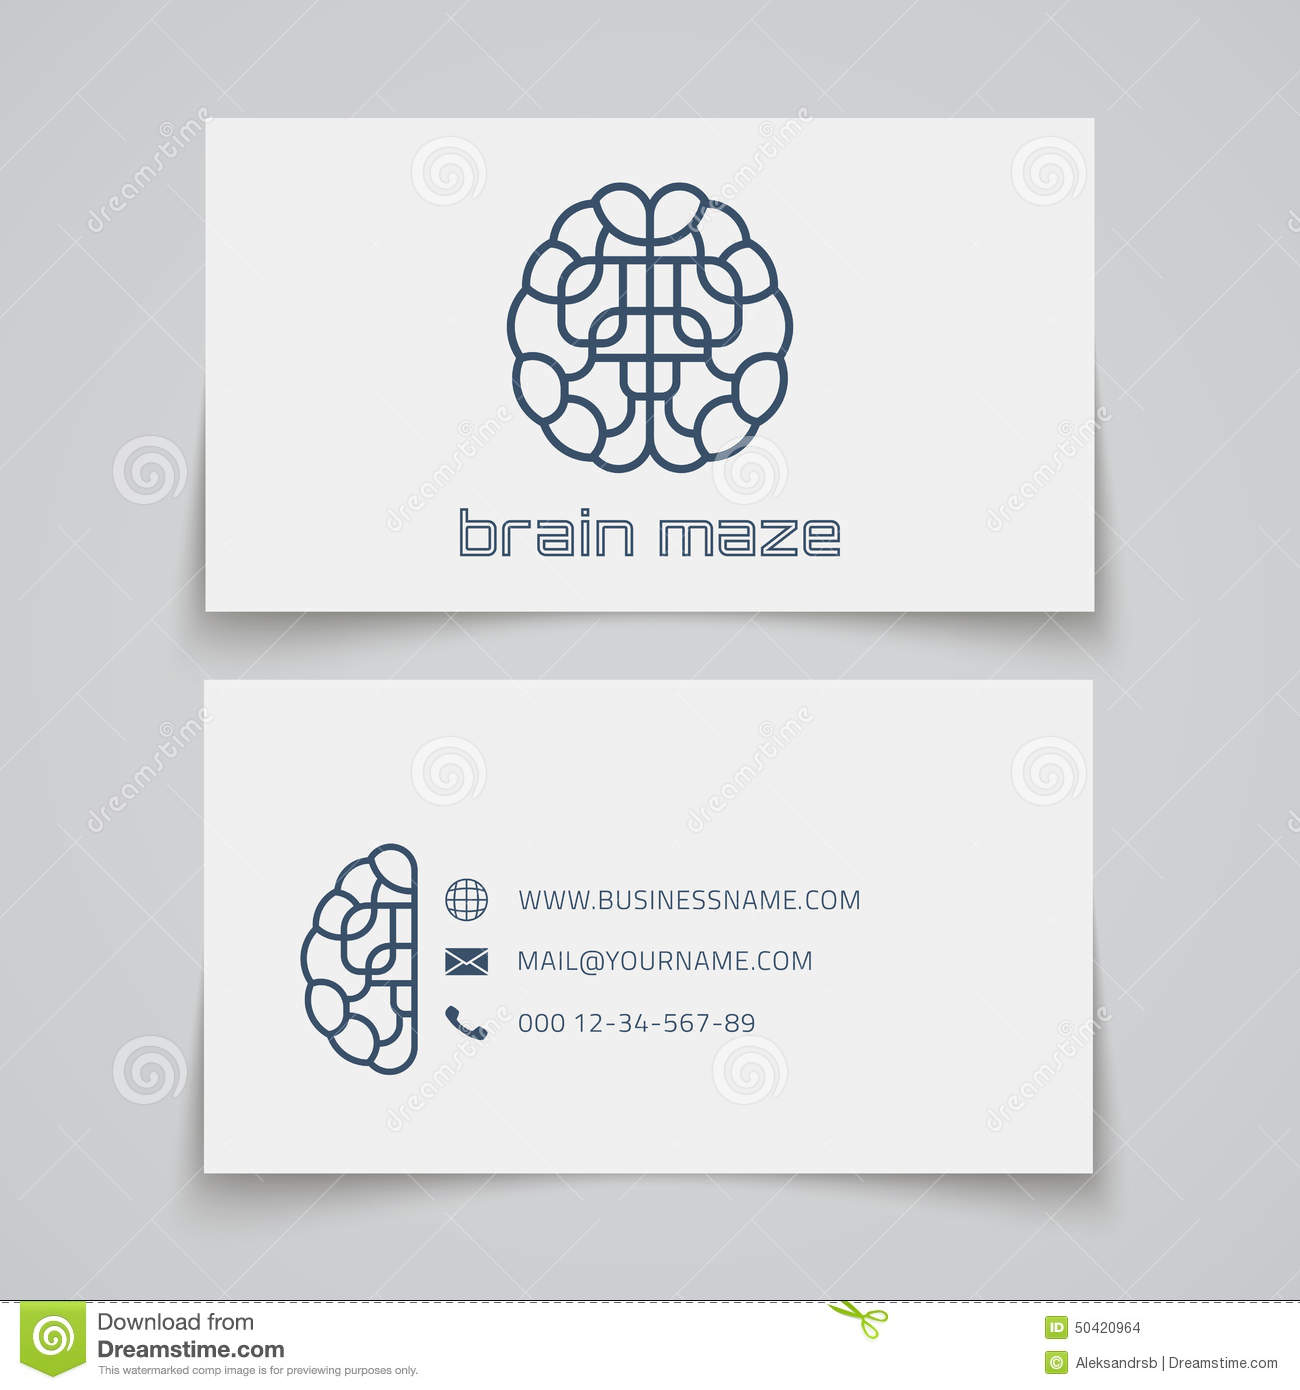 Business card template brain maze logo stock vector illustration download business card template brain maze logo stock vector illustration of background letterhead reheart Gallery